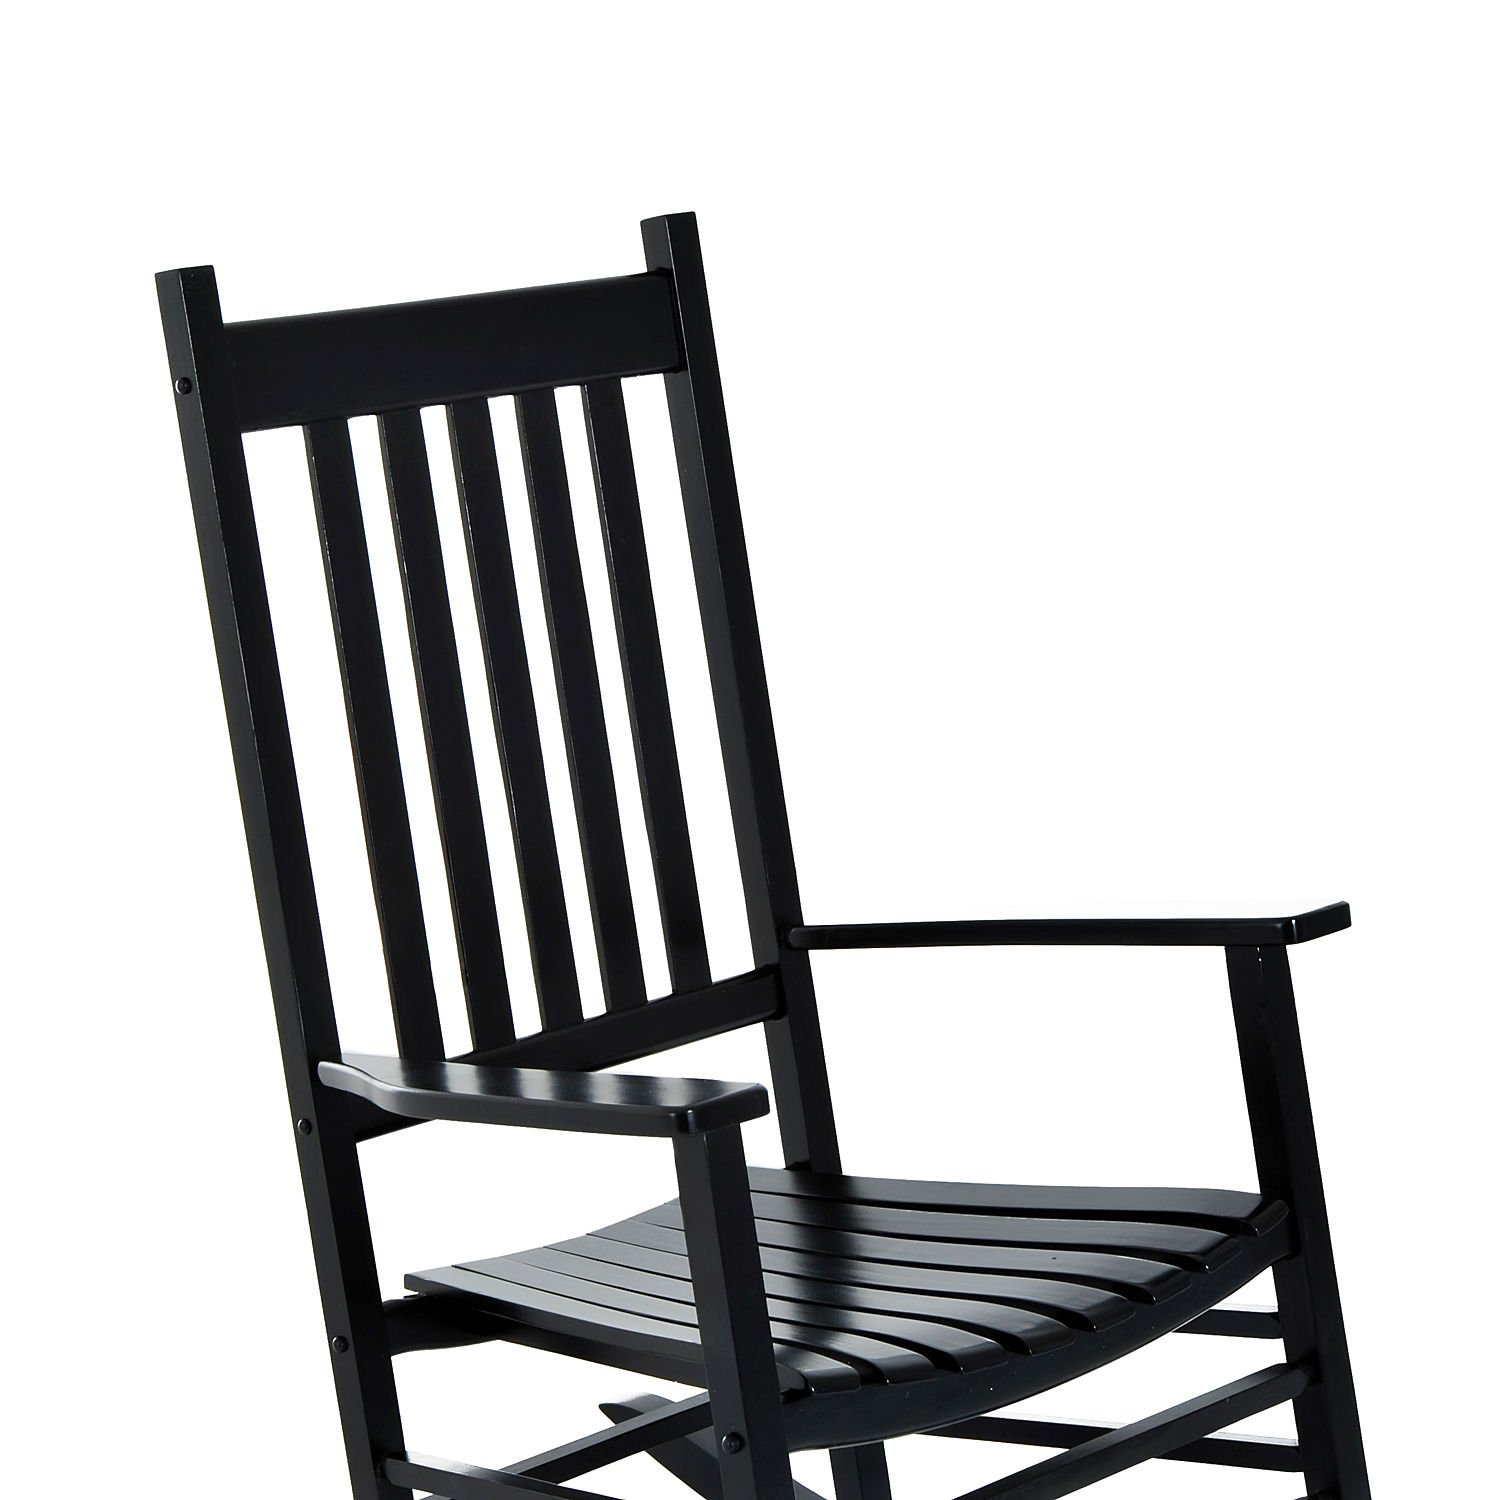 Outsunny Porch Rocking Chair - Outdoor Patio Wooden Rocker - Black by Outsunny (Image #4)